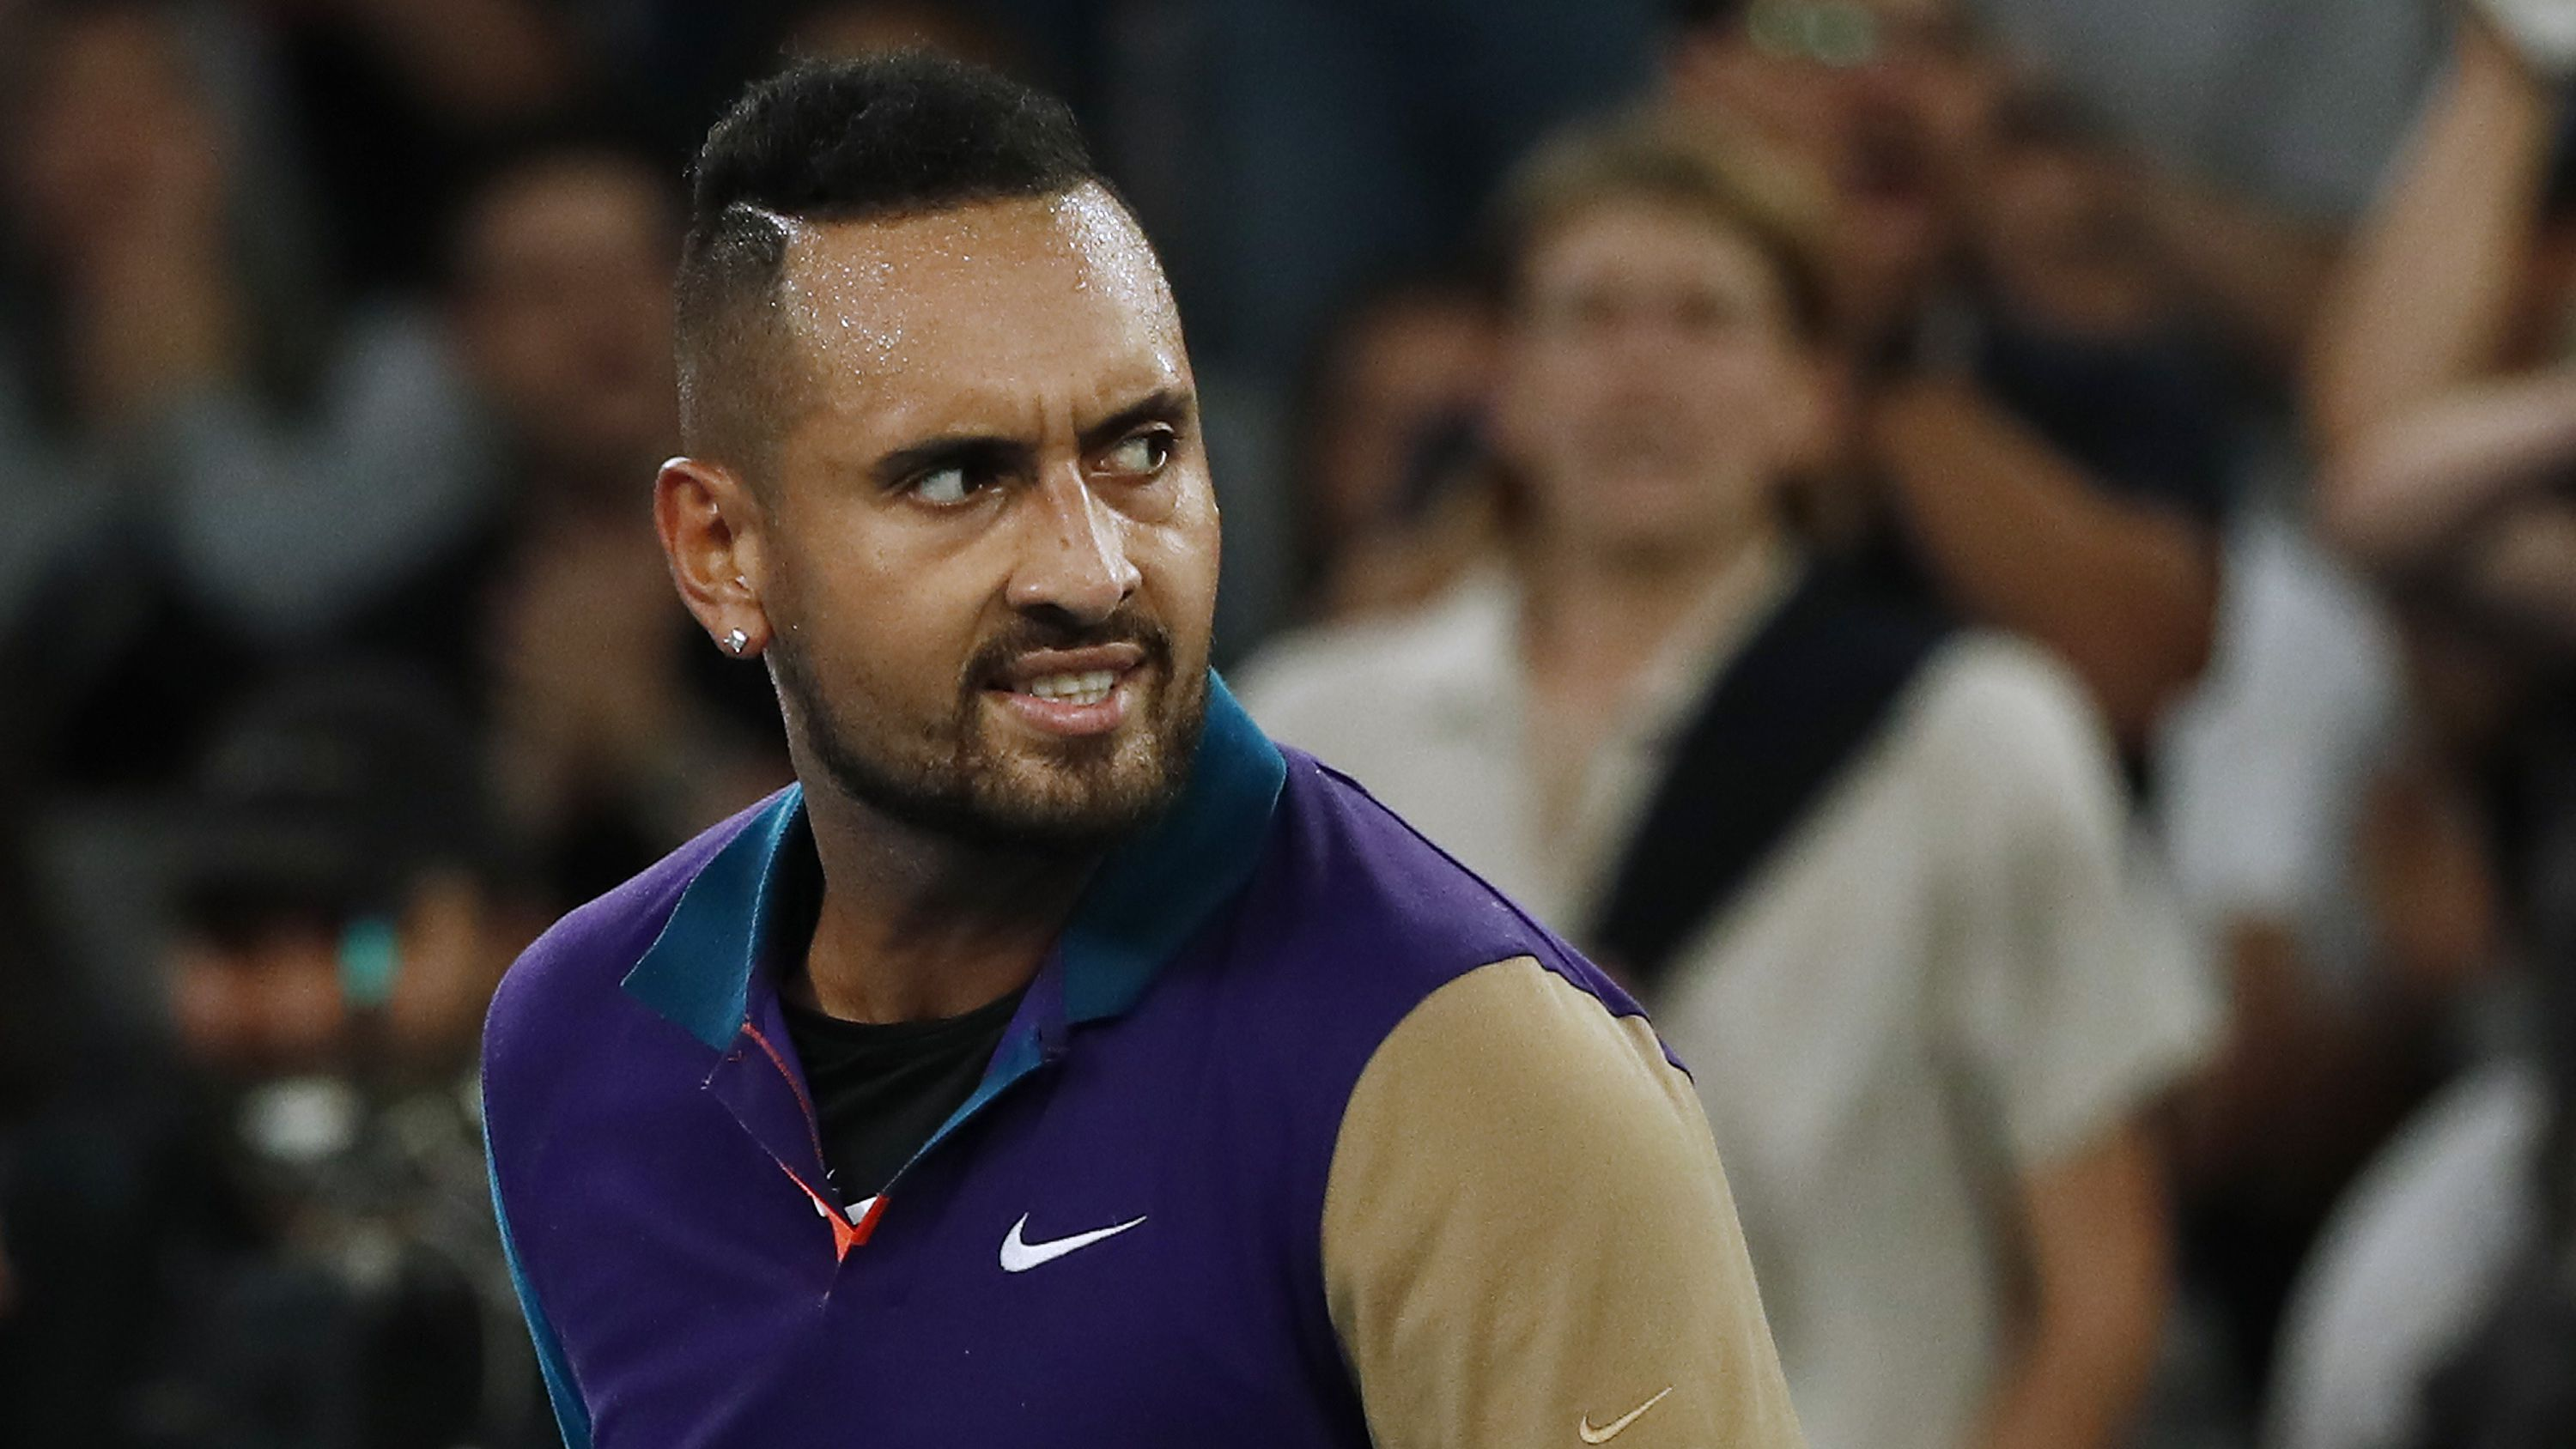 'YOU KNOW NOTHING ABOUT ME': Nick Kyrgios claps back at expert panel's examination of his psyche